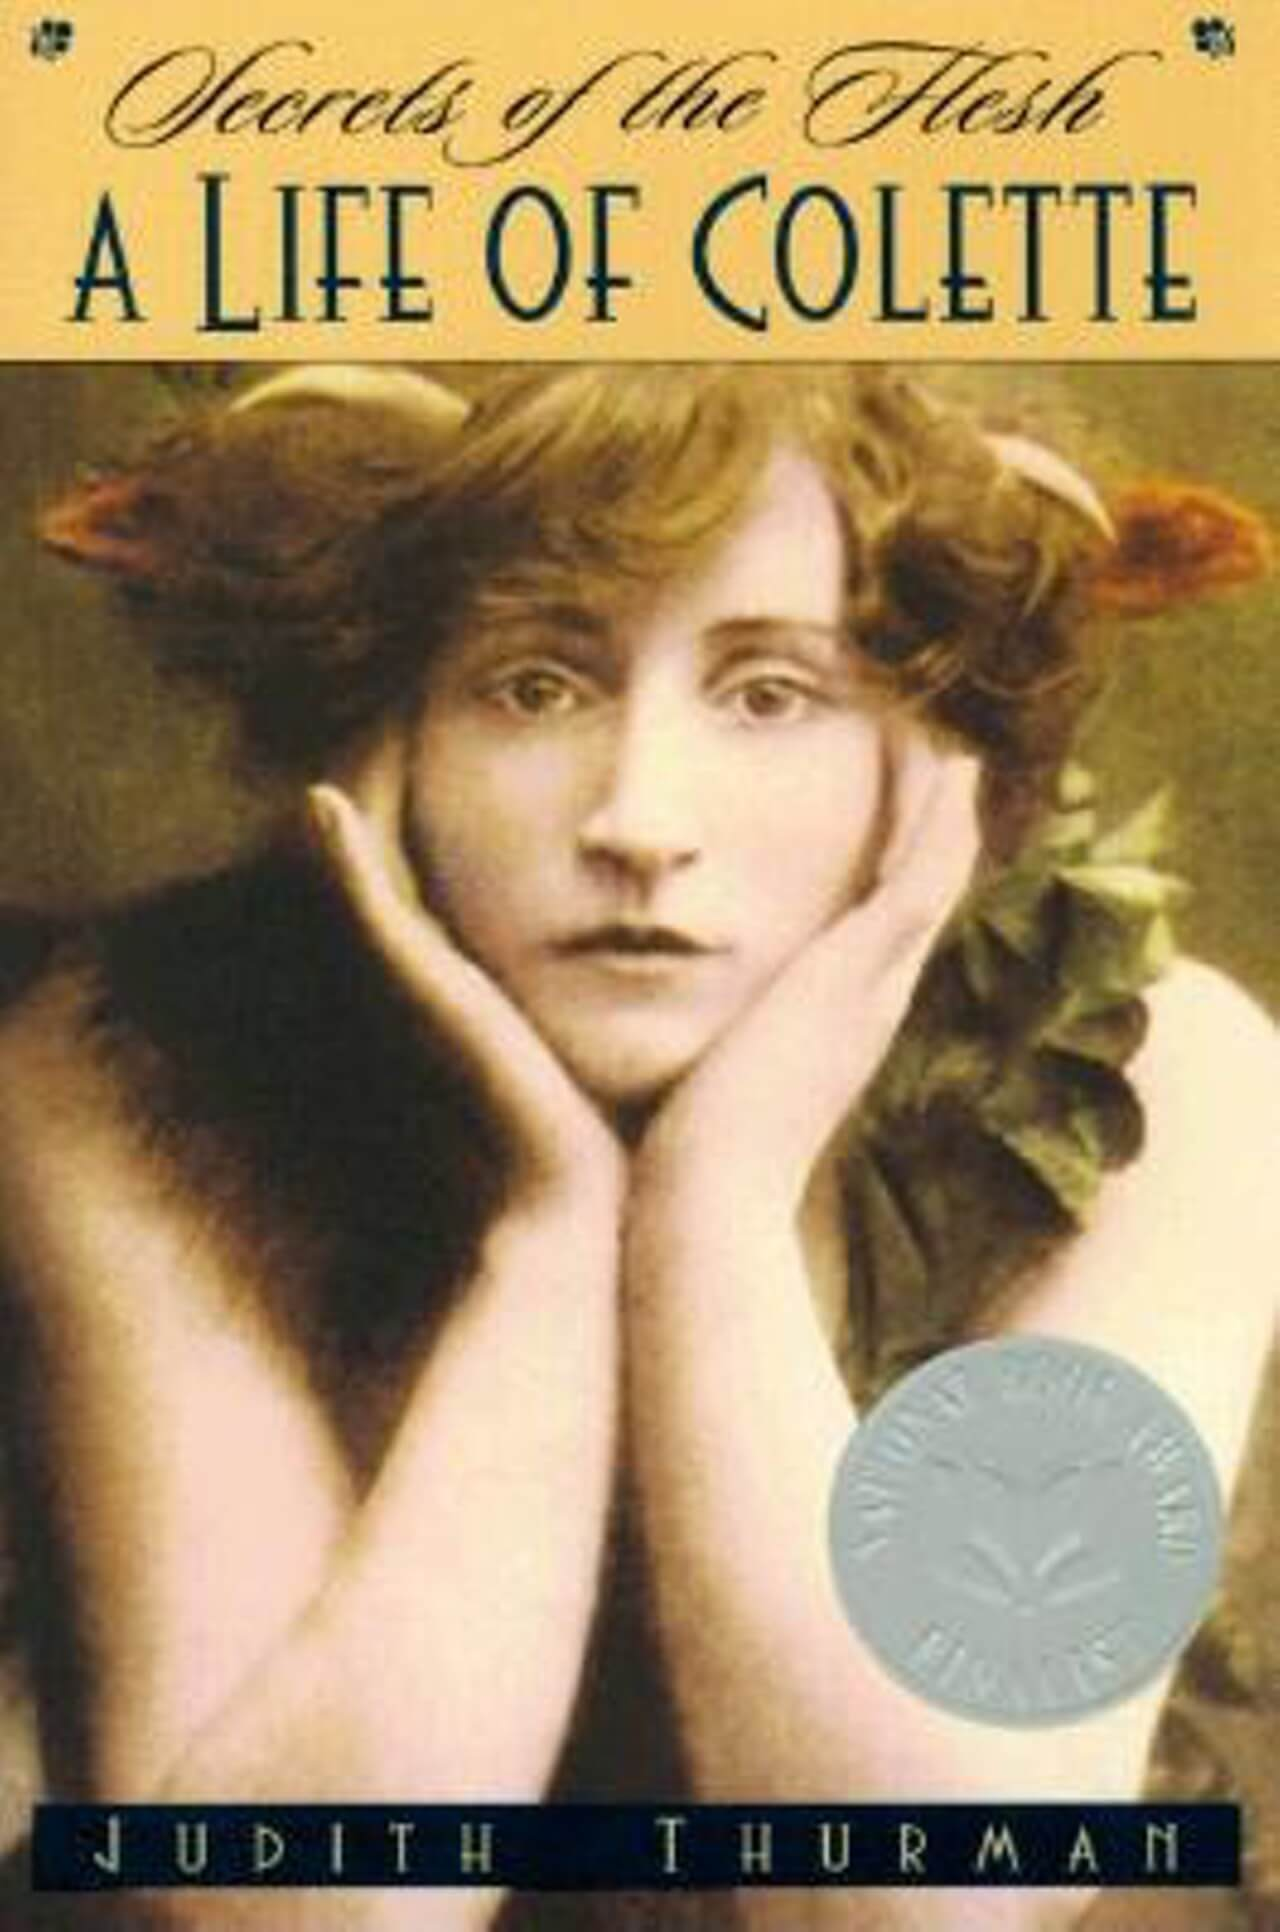 Secrets of the Flesh- A Life of Colette by judith thurman book cover